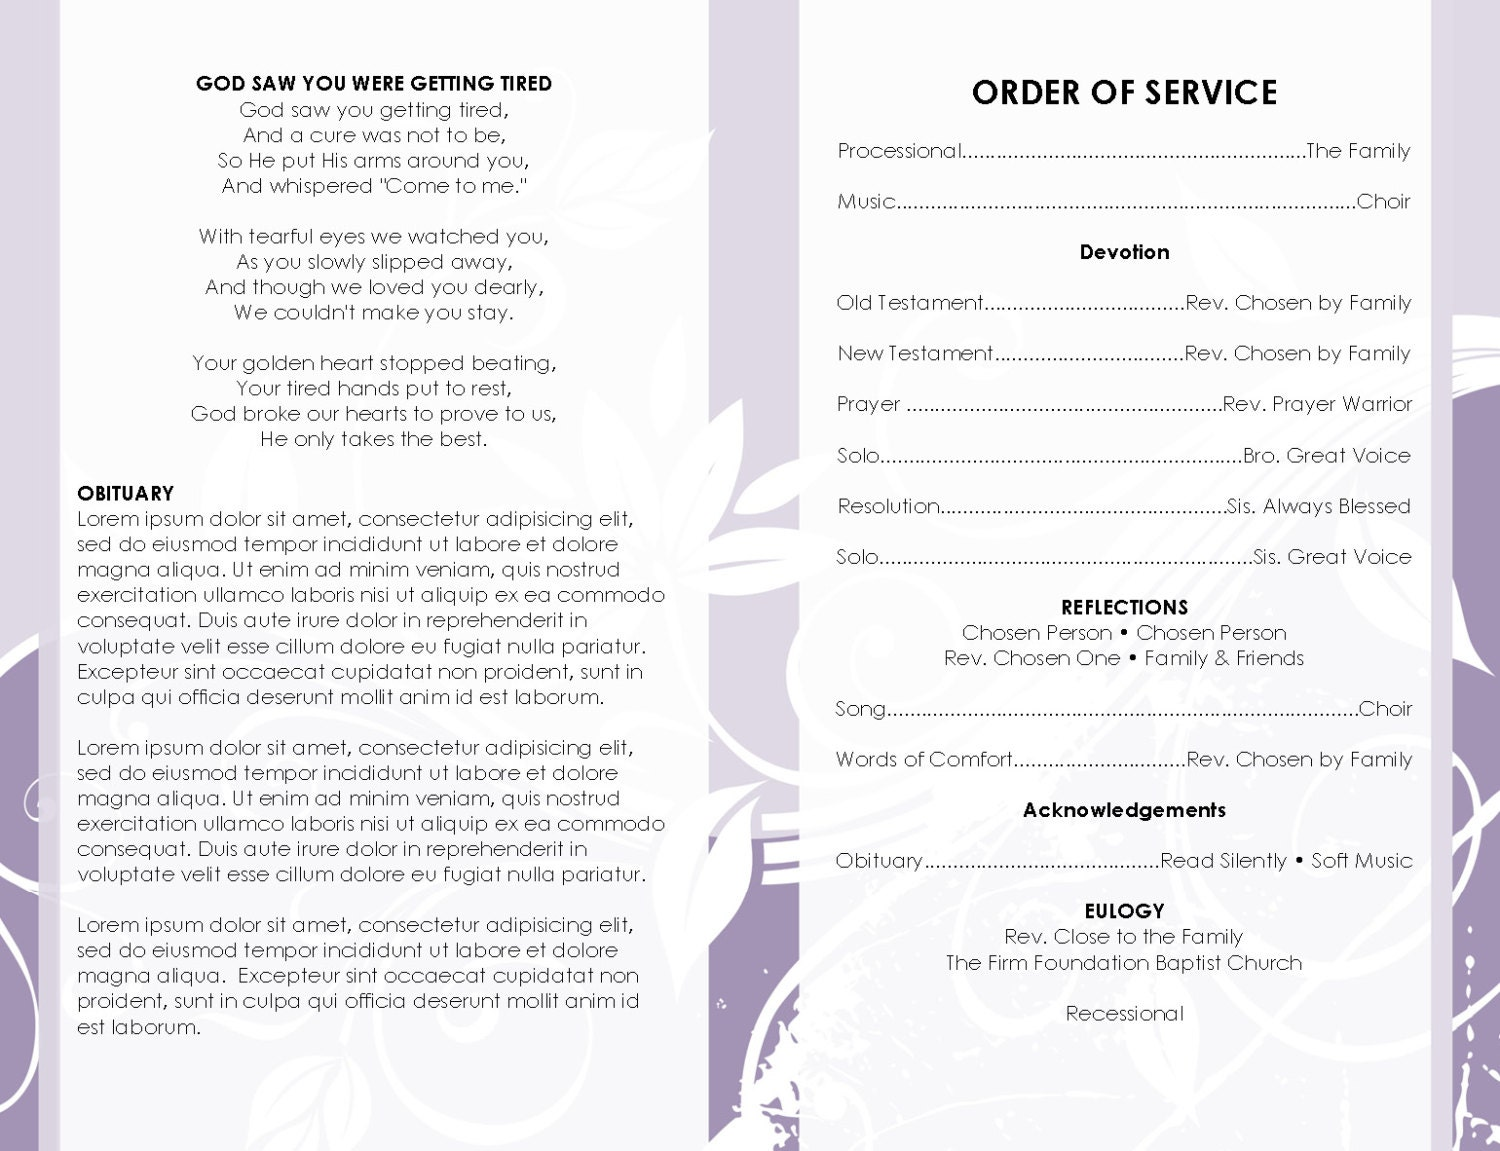 8 page booklet shades of purple printable funeral program template photo center spread page microsoft word document